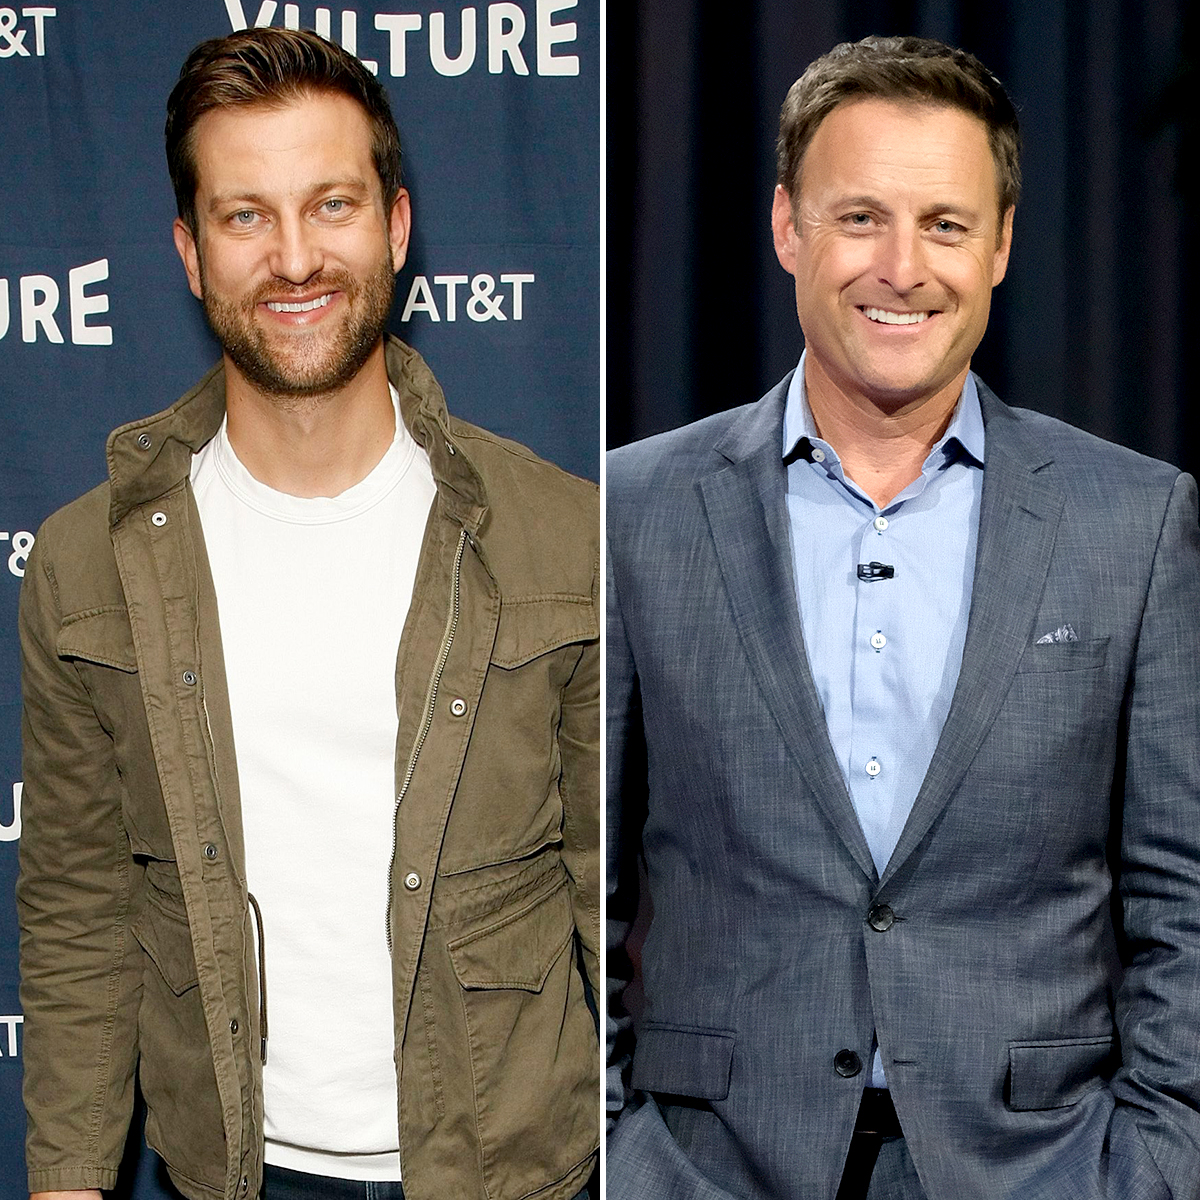 Chris Bukowksi Firing Chris Harrison From Bachelor Is the Easy Way Out